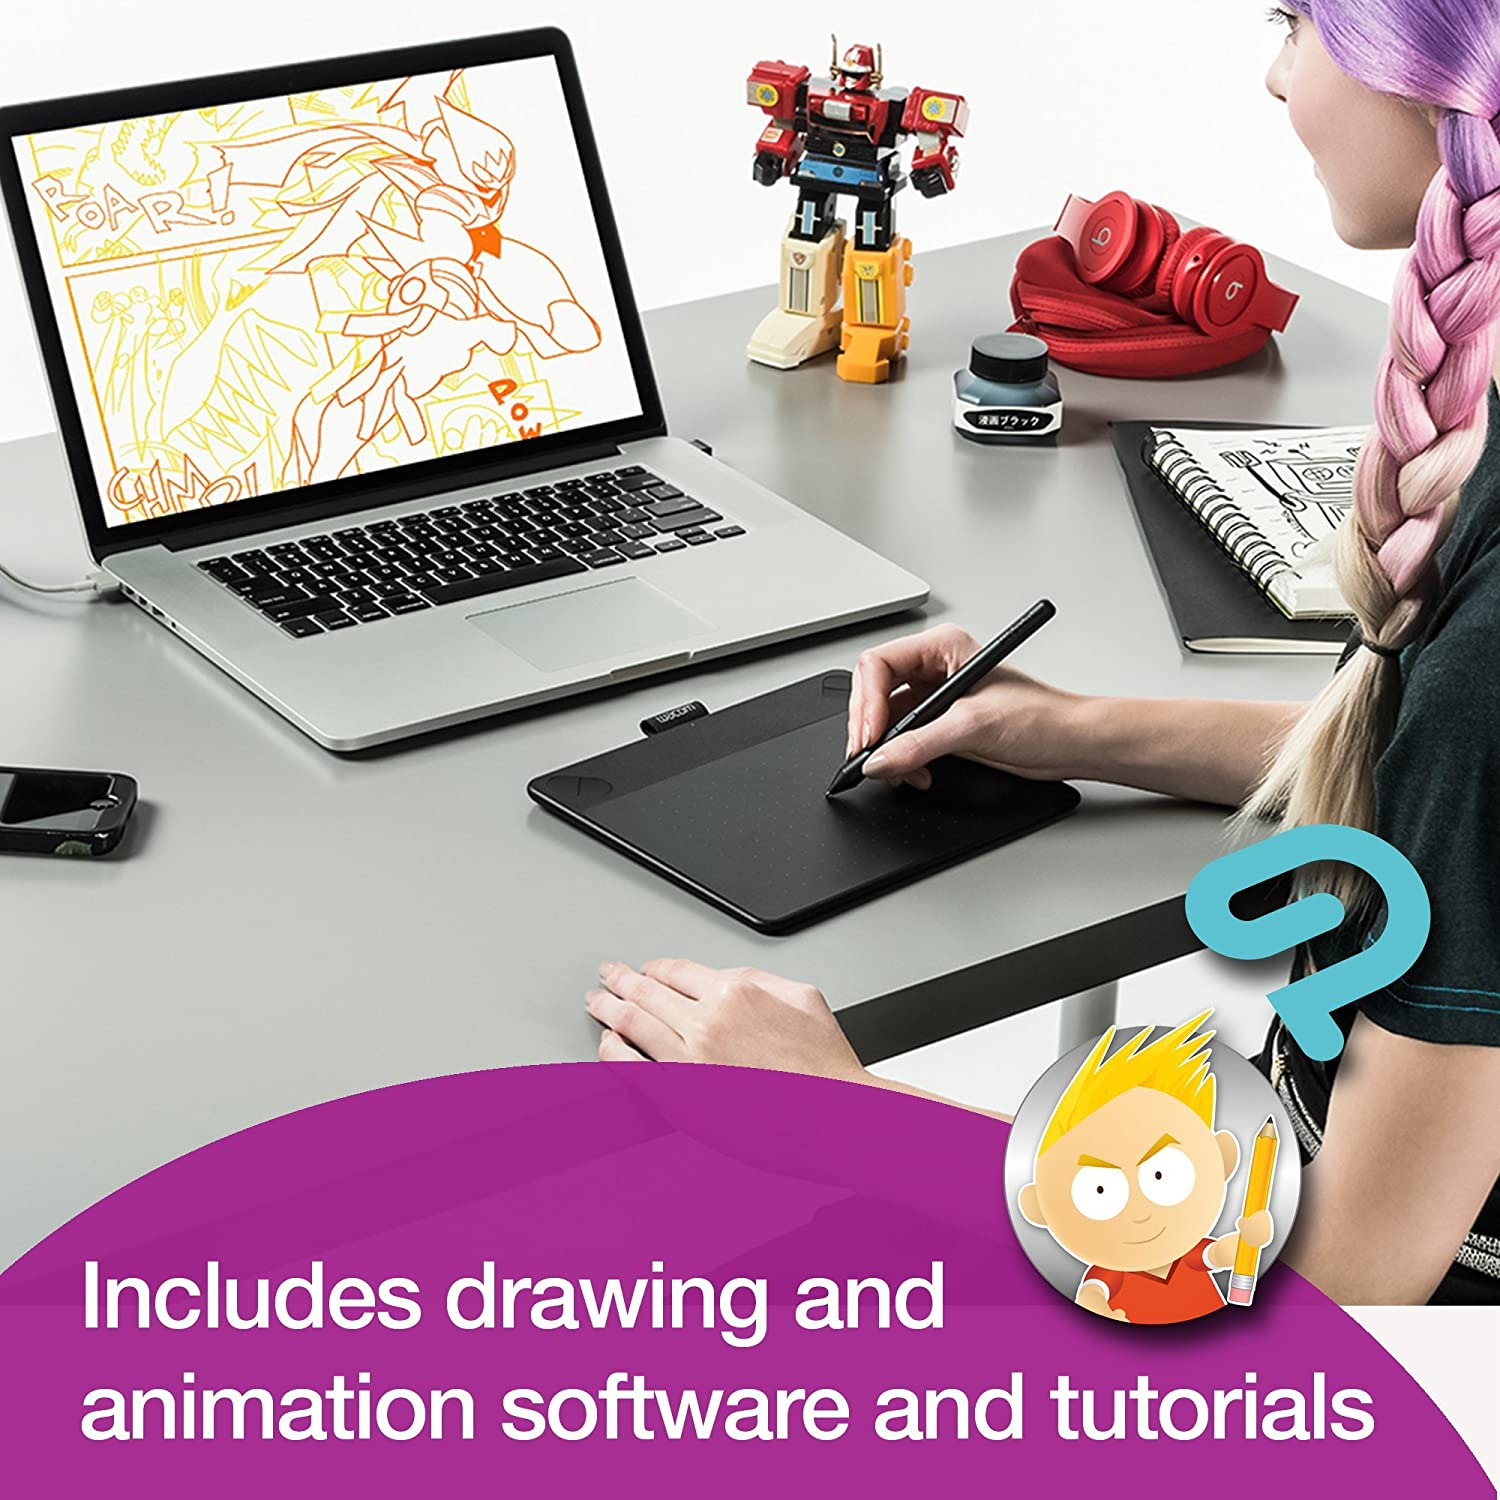 Dr drawing pages on computer - Dr Drawing Pages On Computer 72